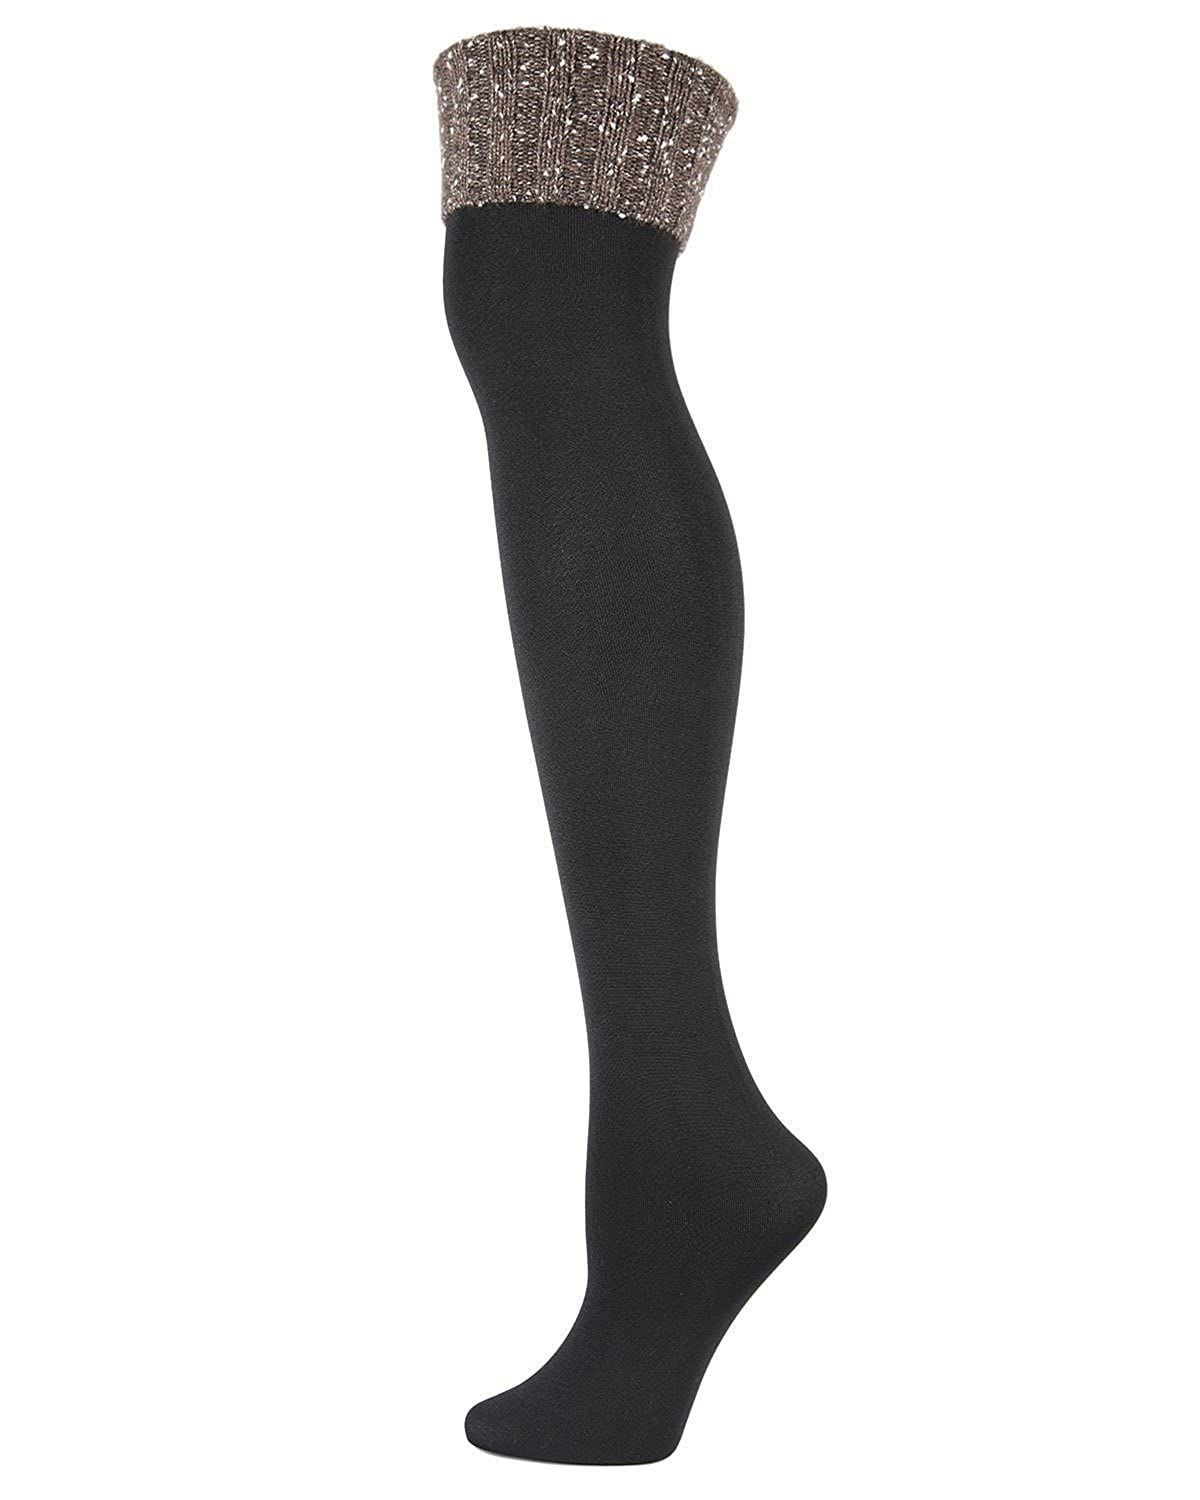 7bcd38f07 MeMoi London Fleece-Lined Over-the-Knee Sock - Ladies Winter Socks  Black Black MF7 5221 One Size 9-11 at Amazon Women s Clothing store